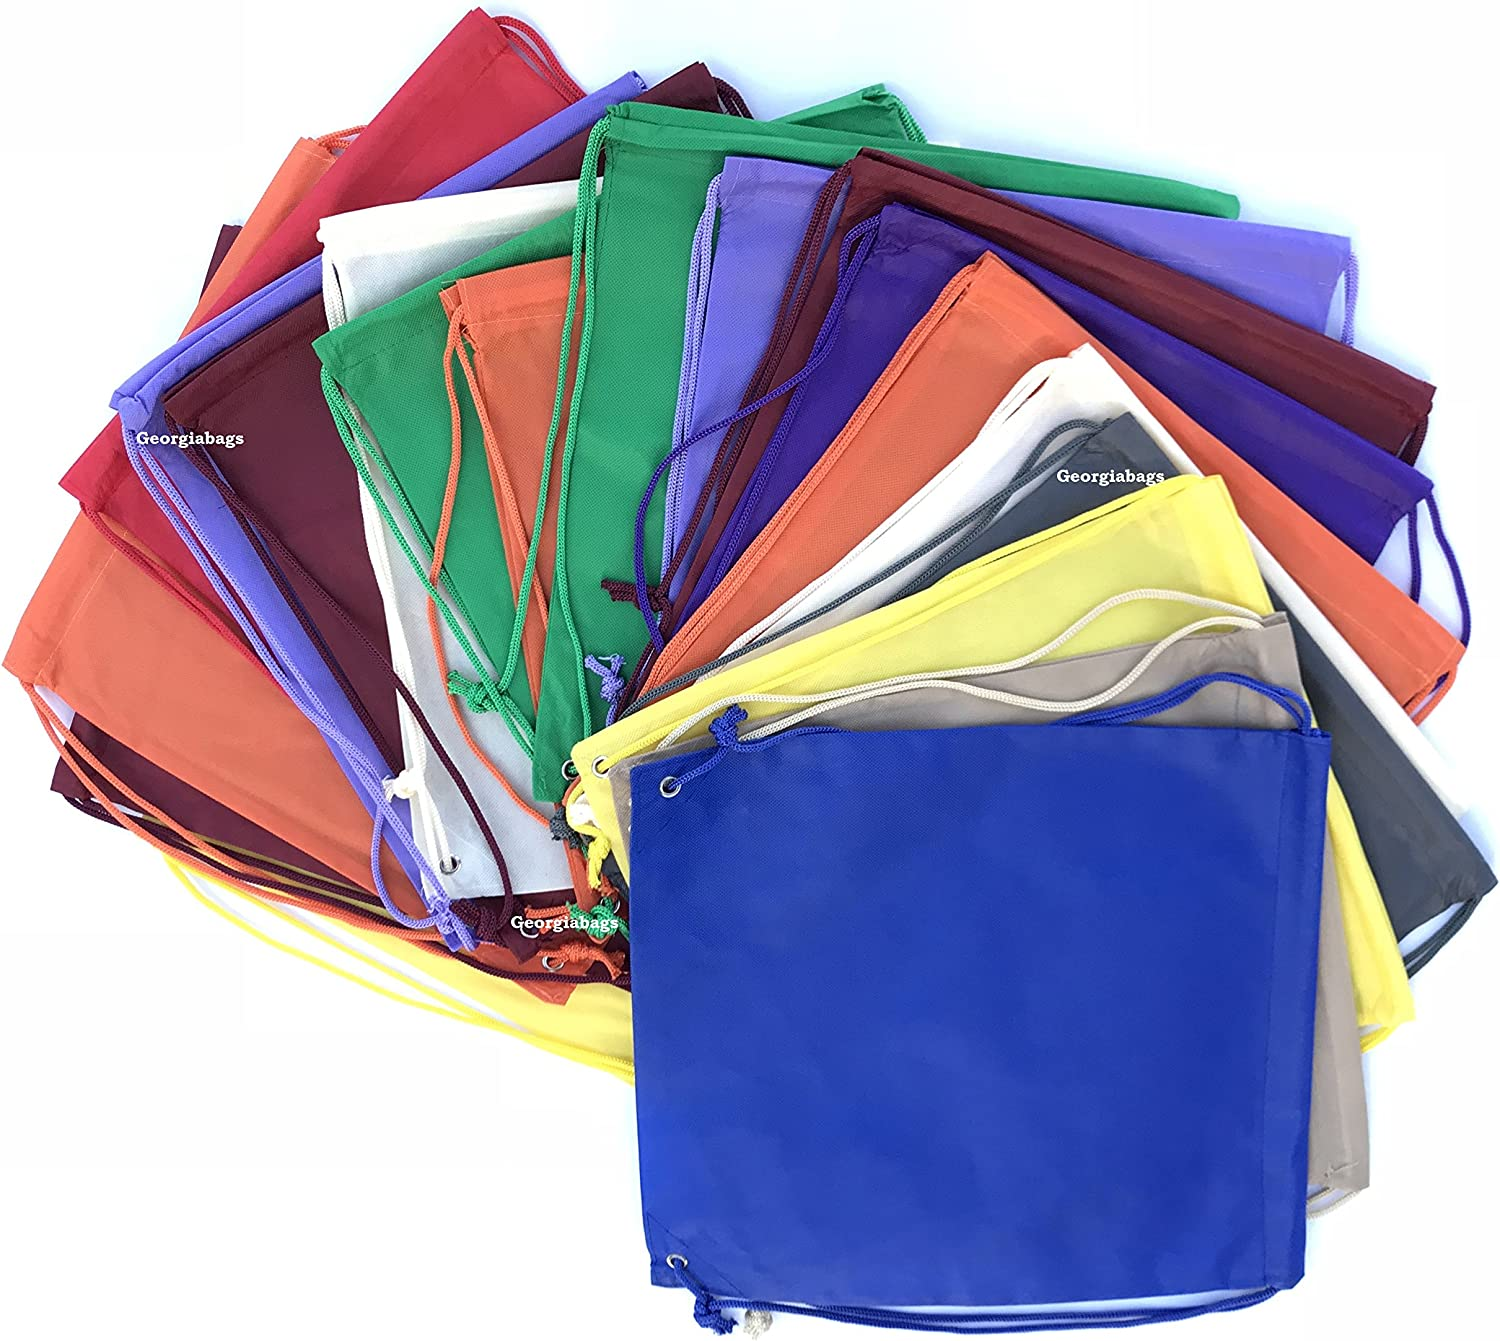 Mix Color-24 Pack Small Size Junior Cinch Packs Non-Woven Backpack Georgiabags Super Value Pack- Bright Color Drawstring Bags Promotional Bags